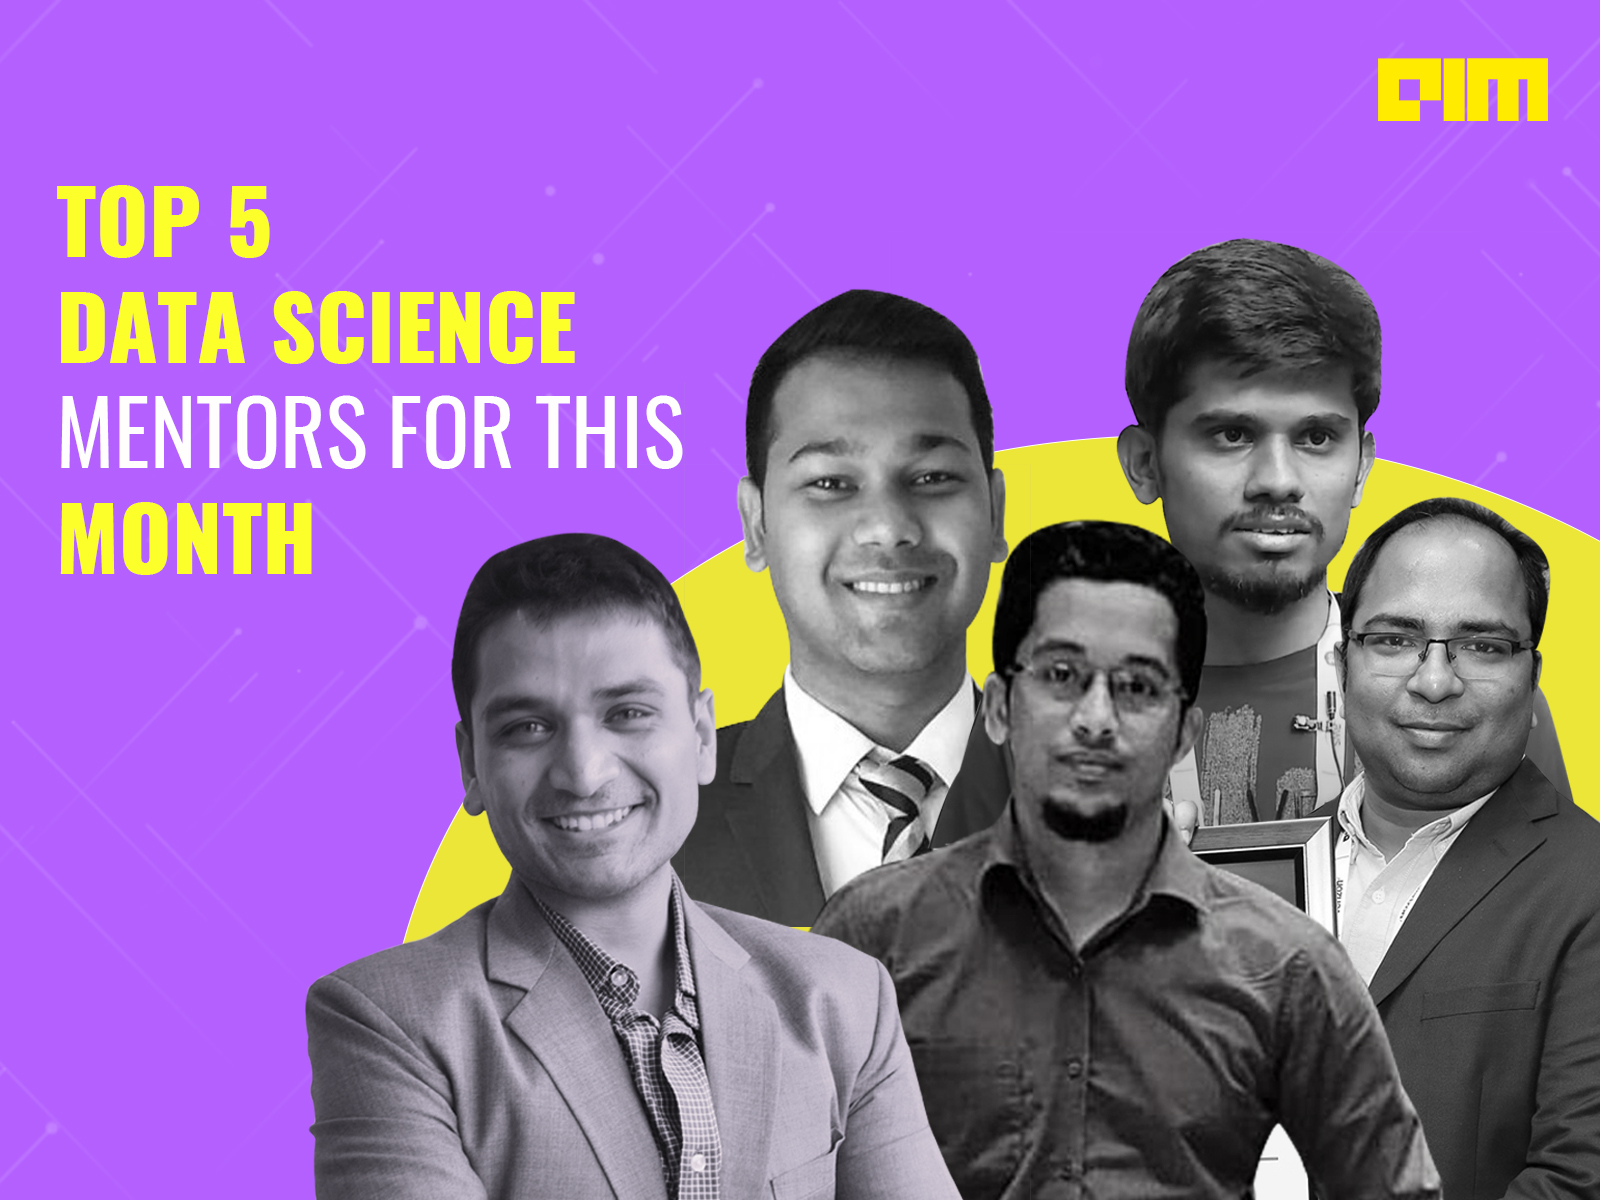 Top 5 Data Science Mentors For This Month